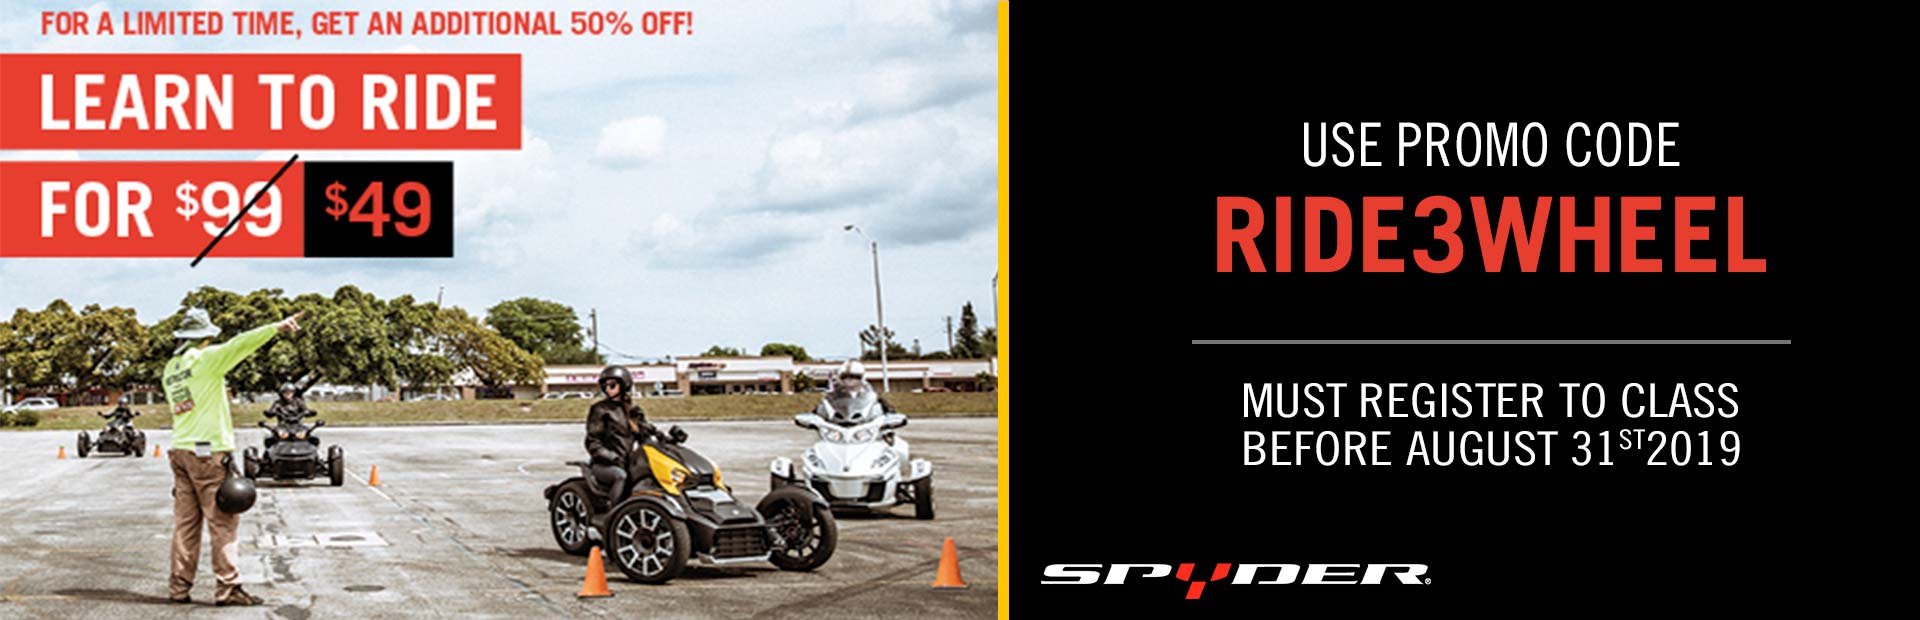 Can-Am: CAN-AM RIDER EDUCATION PROGRAM - Spyder